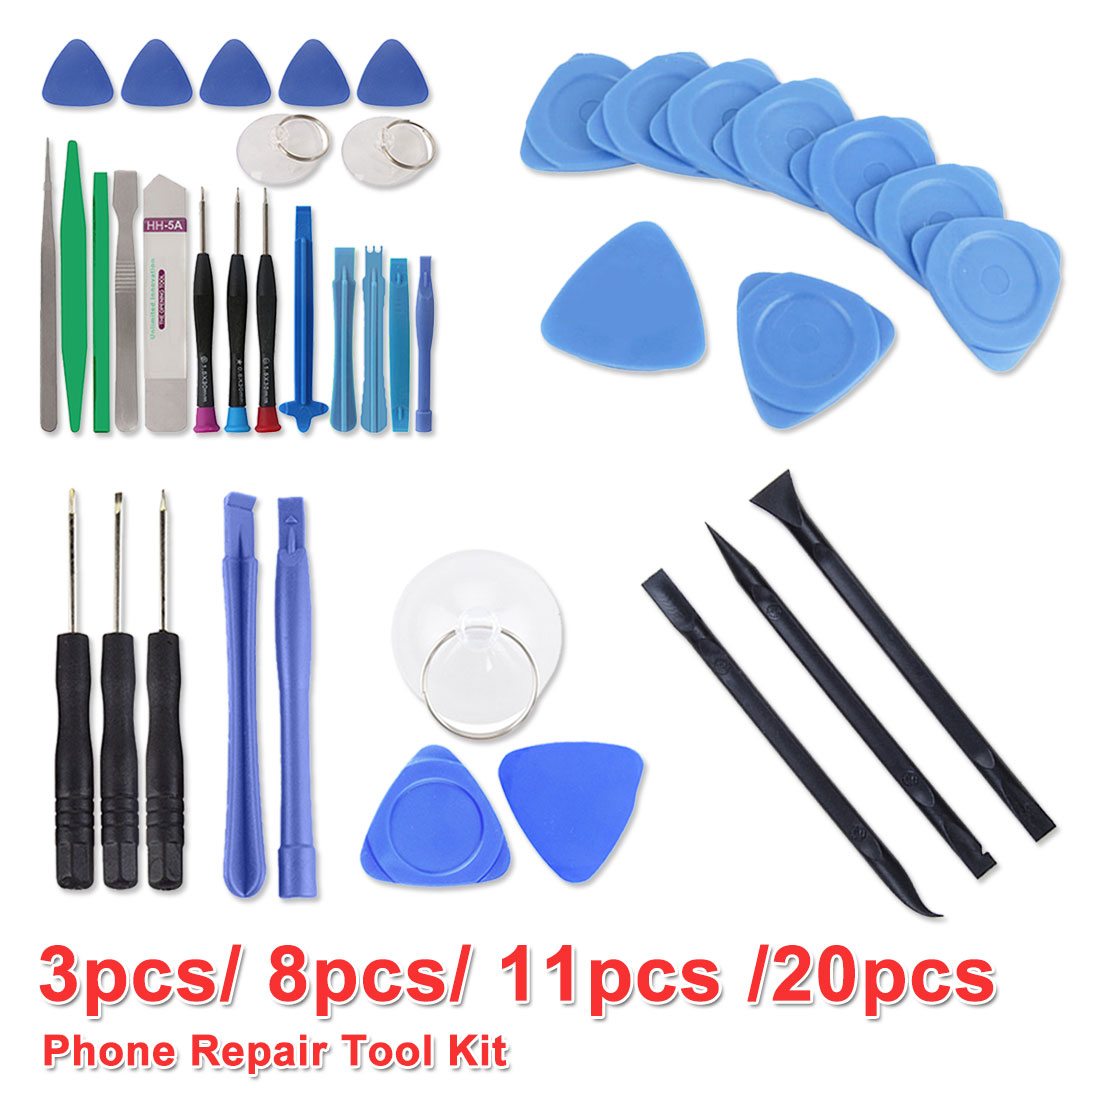 Hand Tools Set 8 in 1/11 in 1/20 in 1/3pcs Mobile Phone Repair Tools Kit Spudger Pry Opening Tool Screwdriver Set for Phone